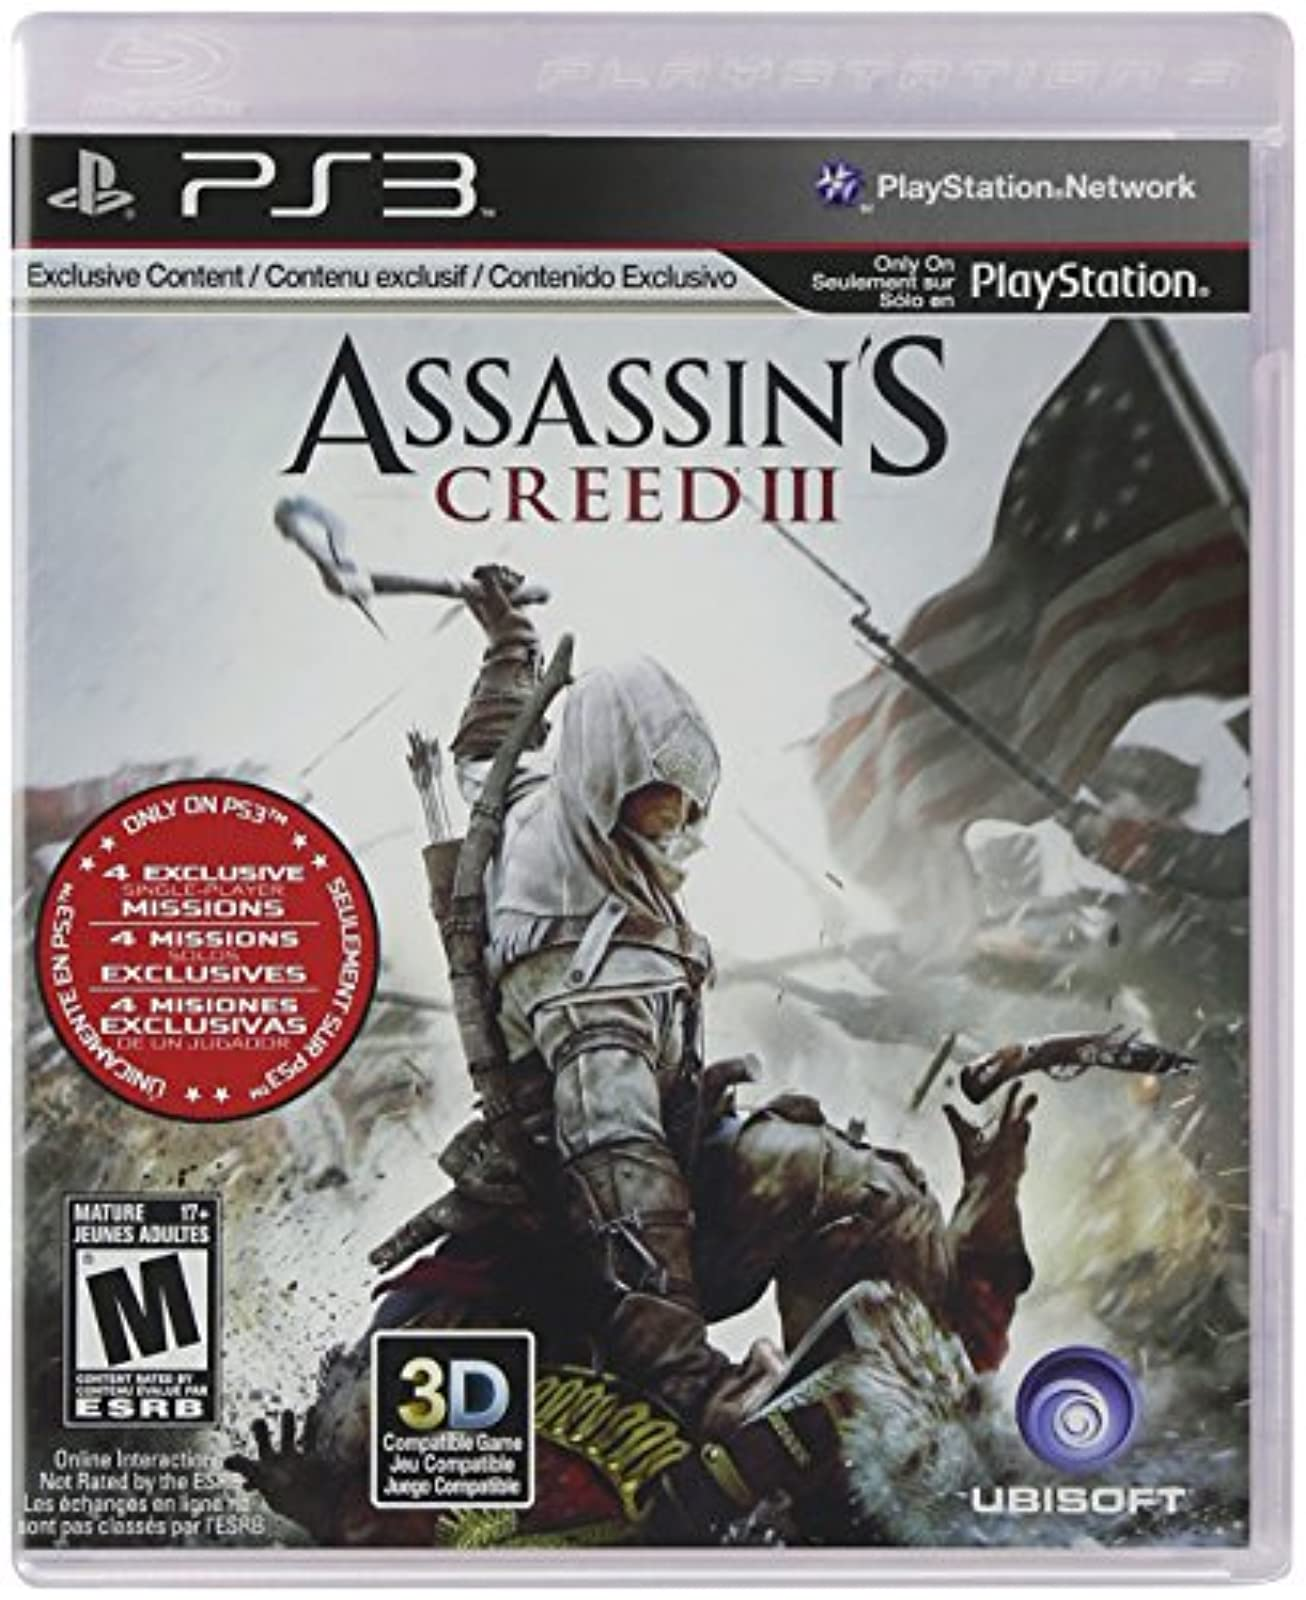 Assassin's Creed III Game For PlayStation 3 PS3